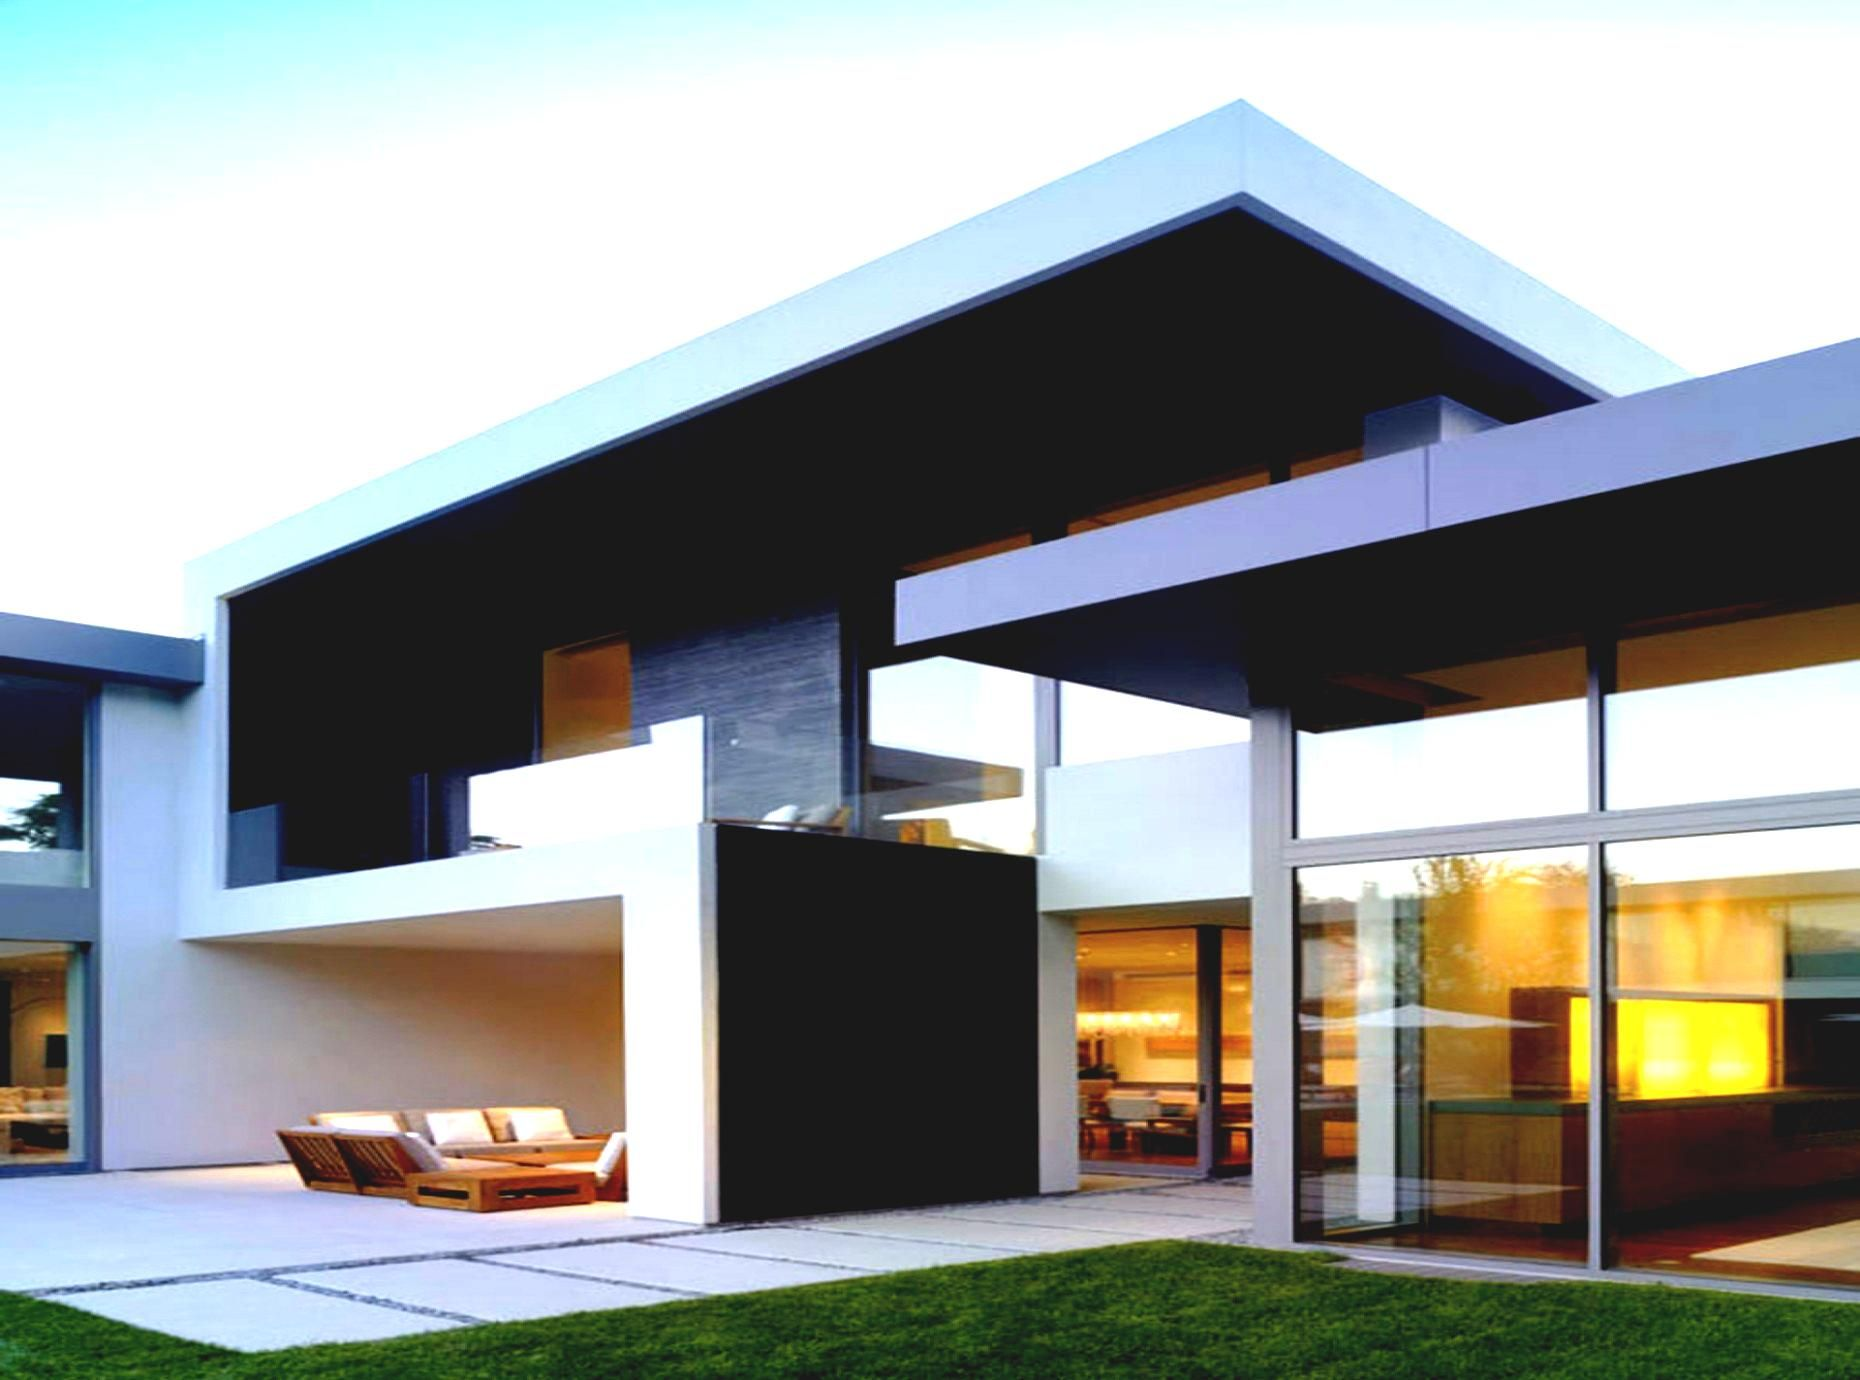 Architecture famous minimalist architects design best houses the world ideas inspiration